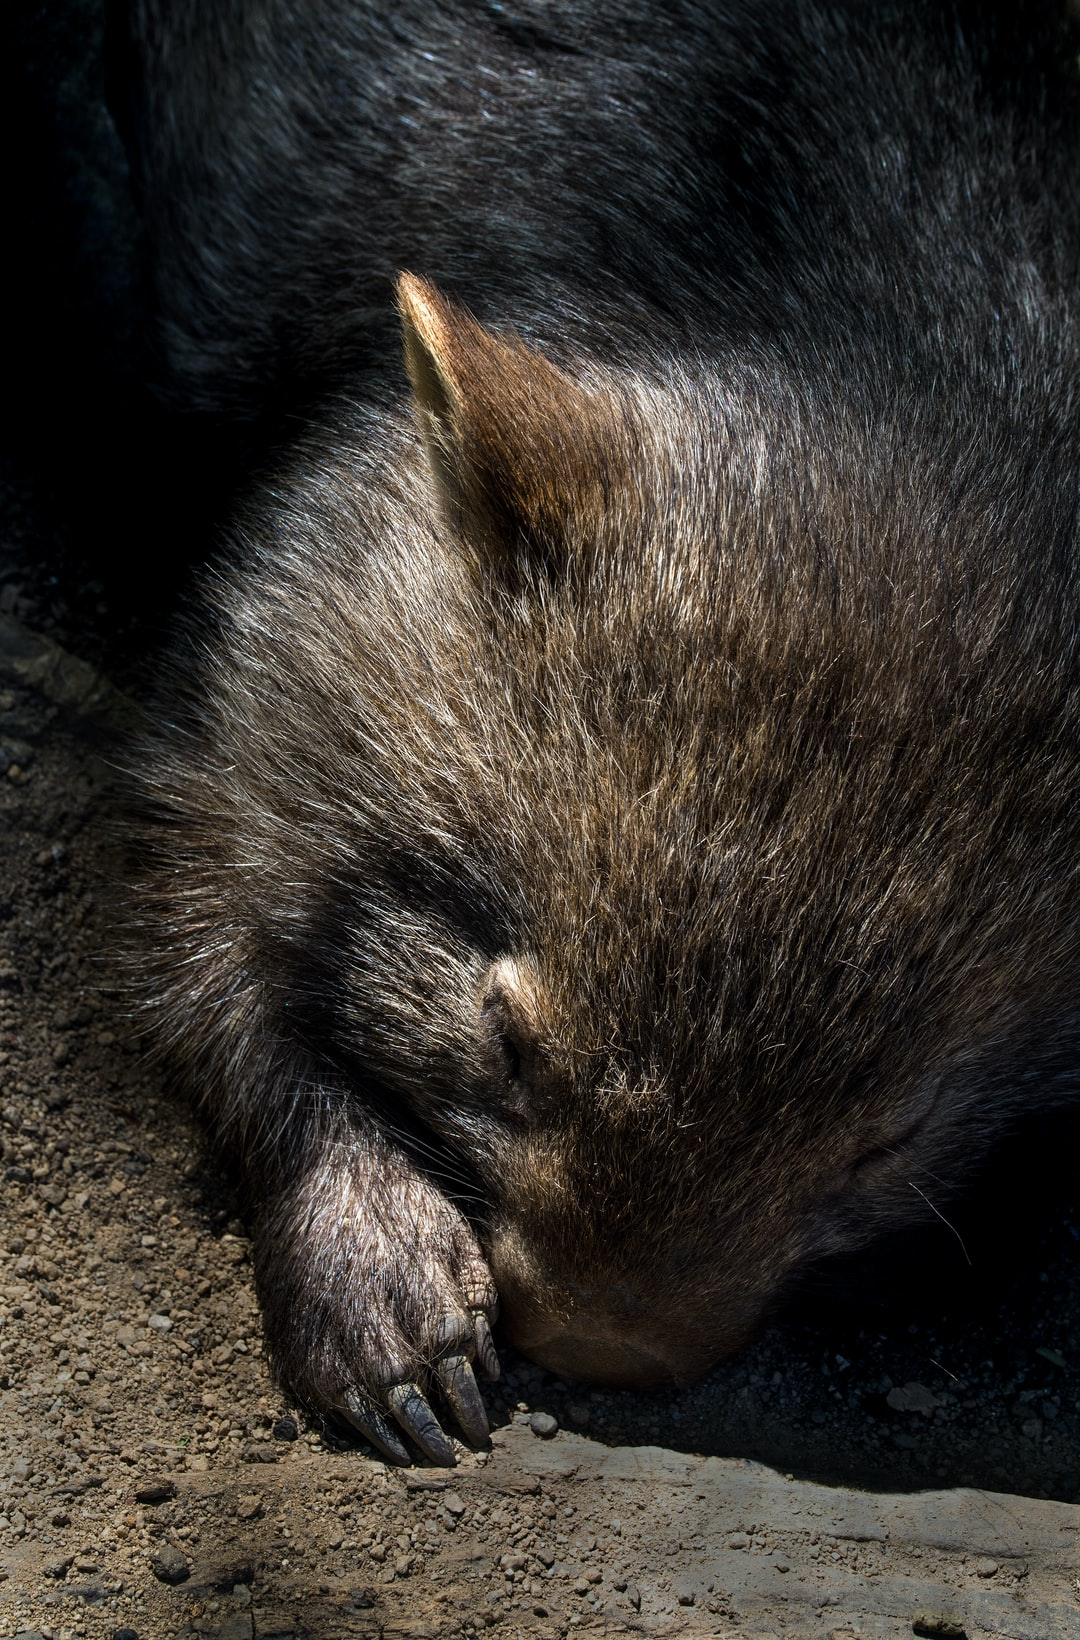 """Sleeping Wombat"". A young wombat enjoys a nap."